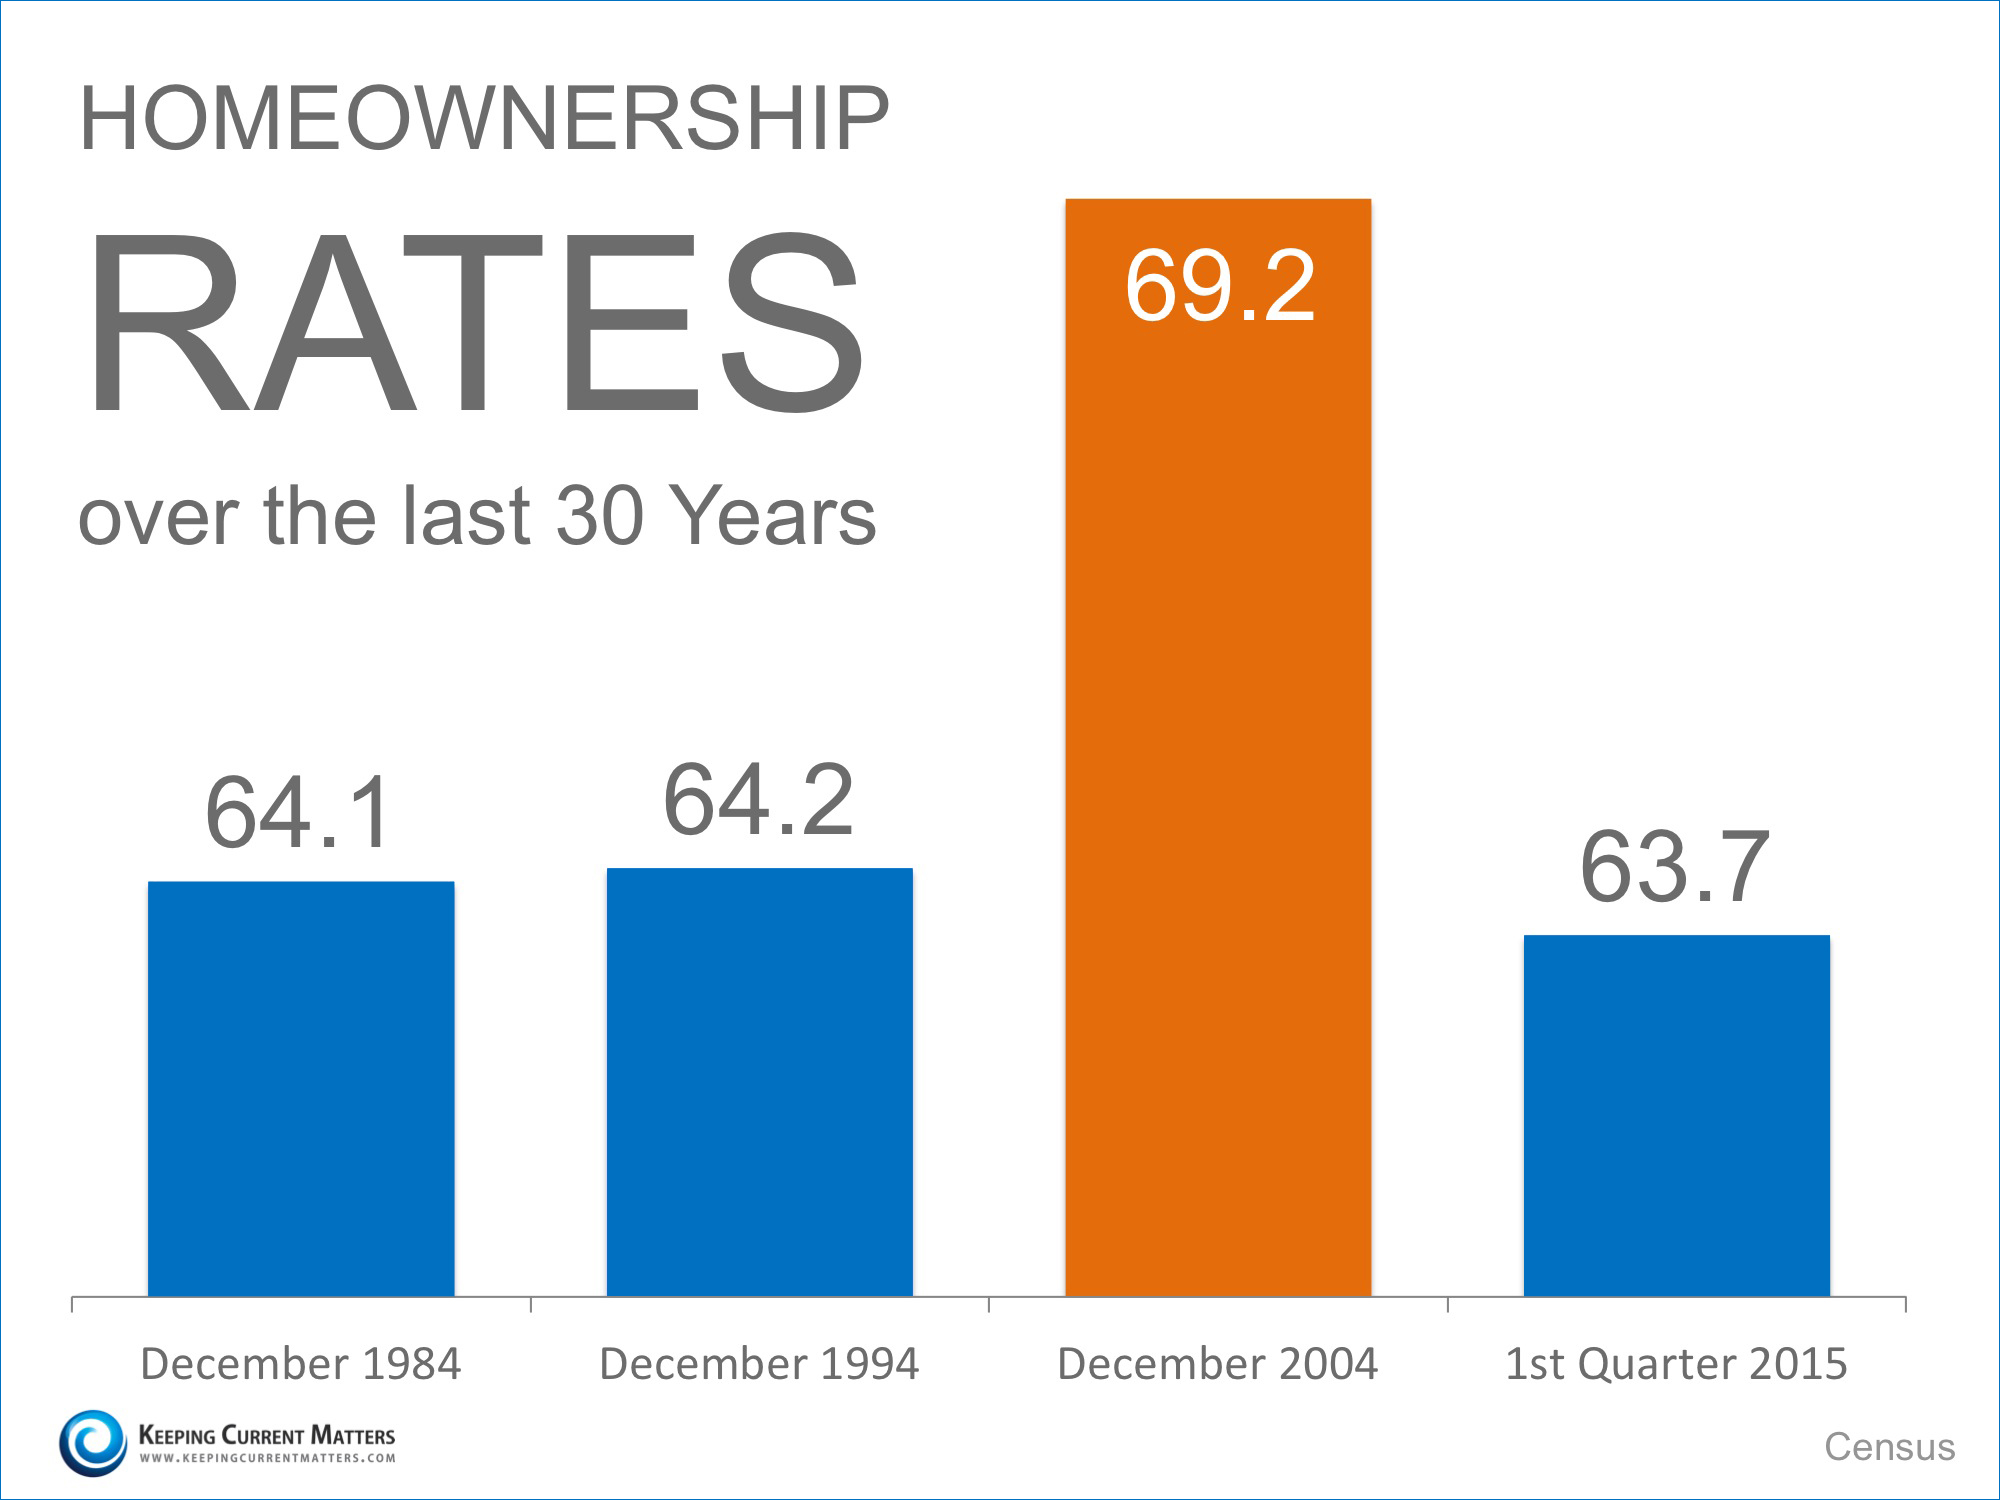 Homeownership Rates Over 30 Years   Keeping Current Matters